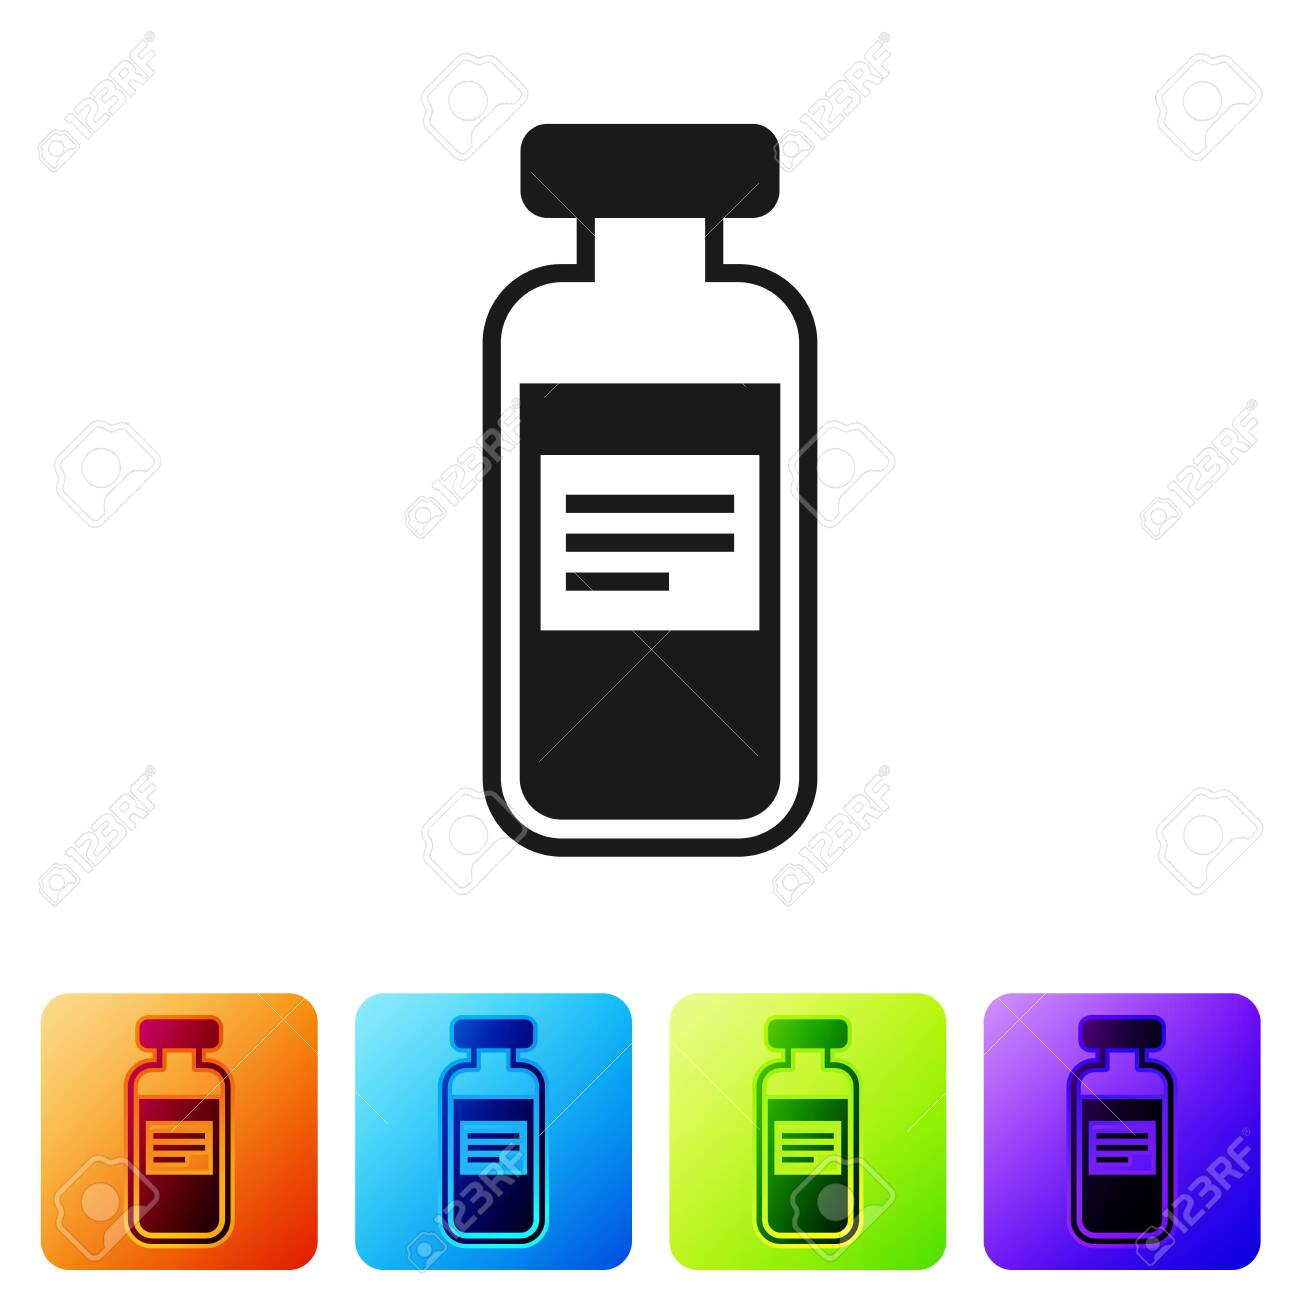 Black Medical vial, ampoule, bottle icon isolated on white background. Vaccination, injection, vaccine healthcare concept. Set icon in color square buttons. Vector Illustration - 124104201